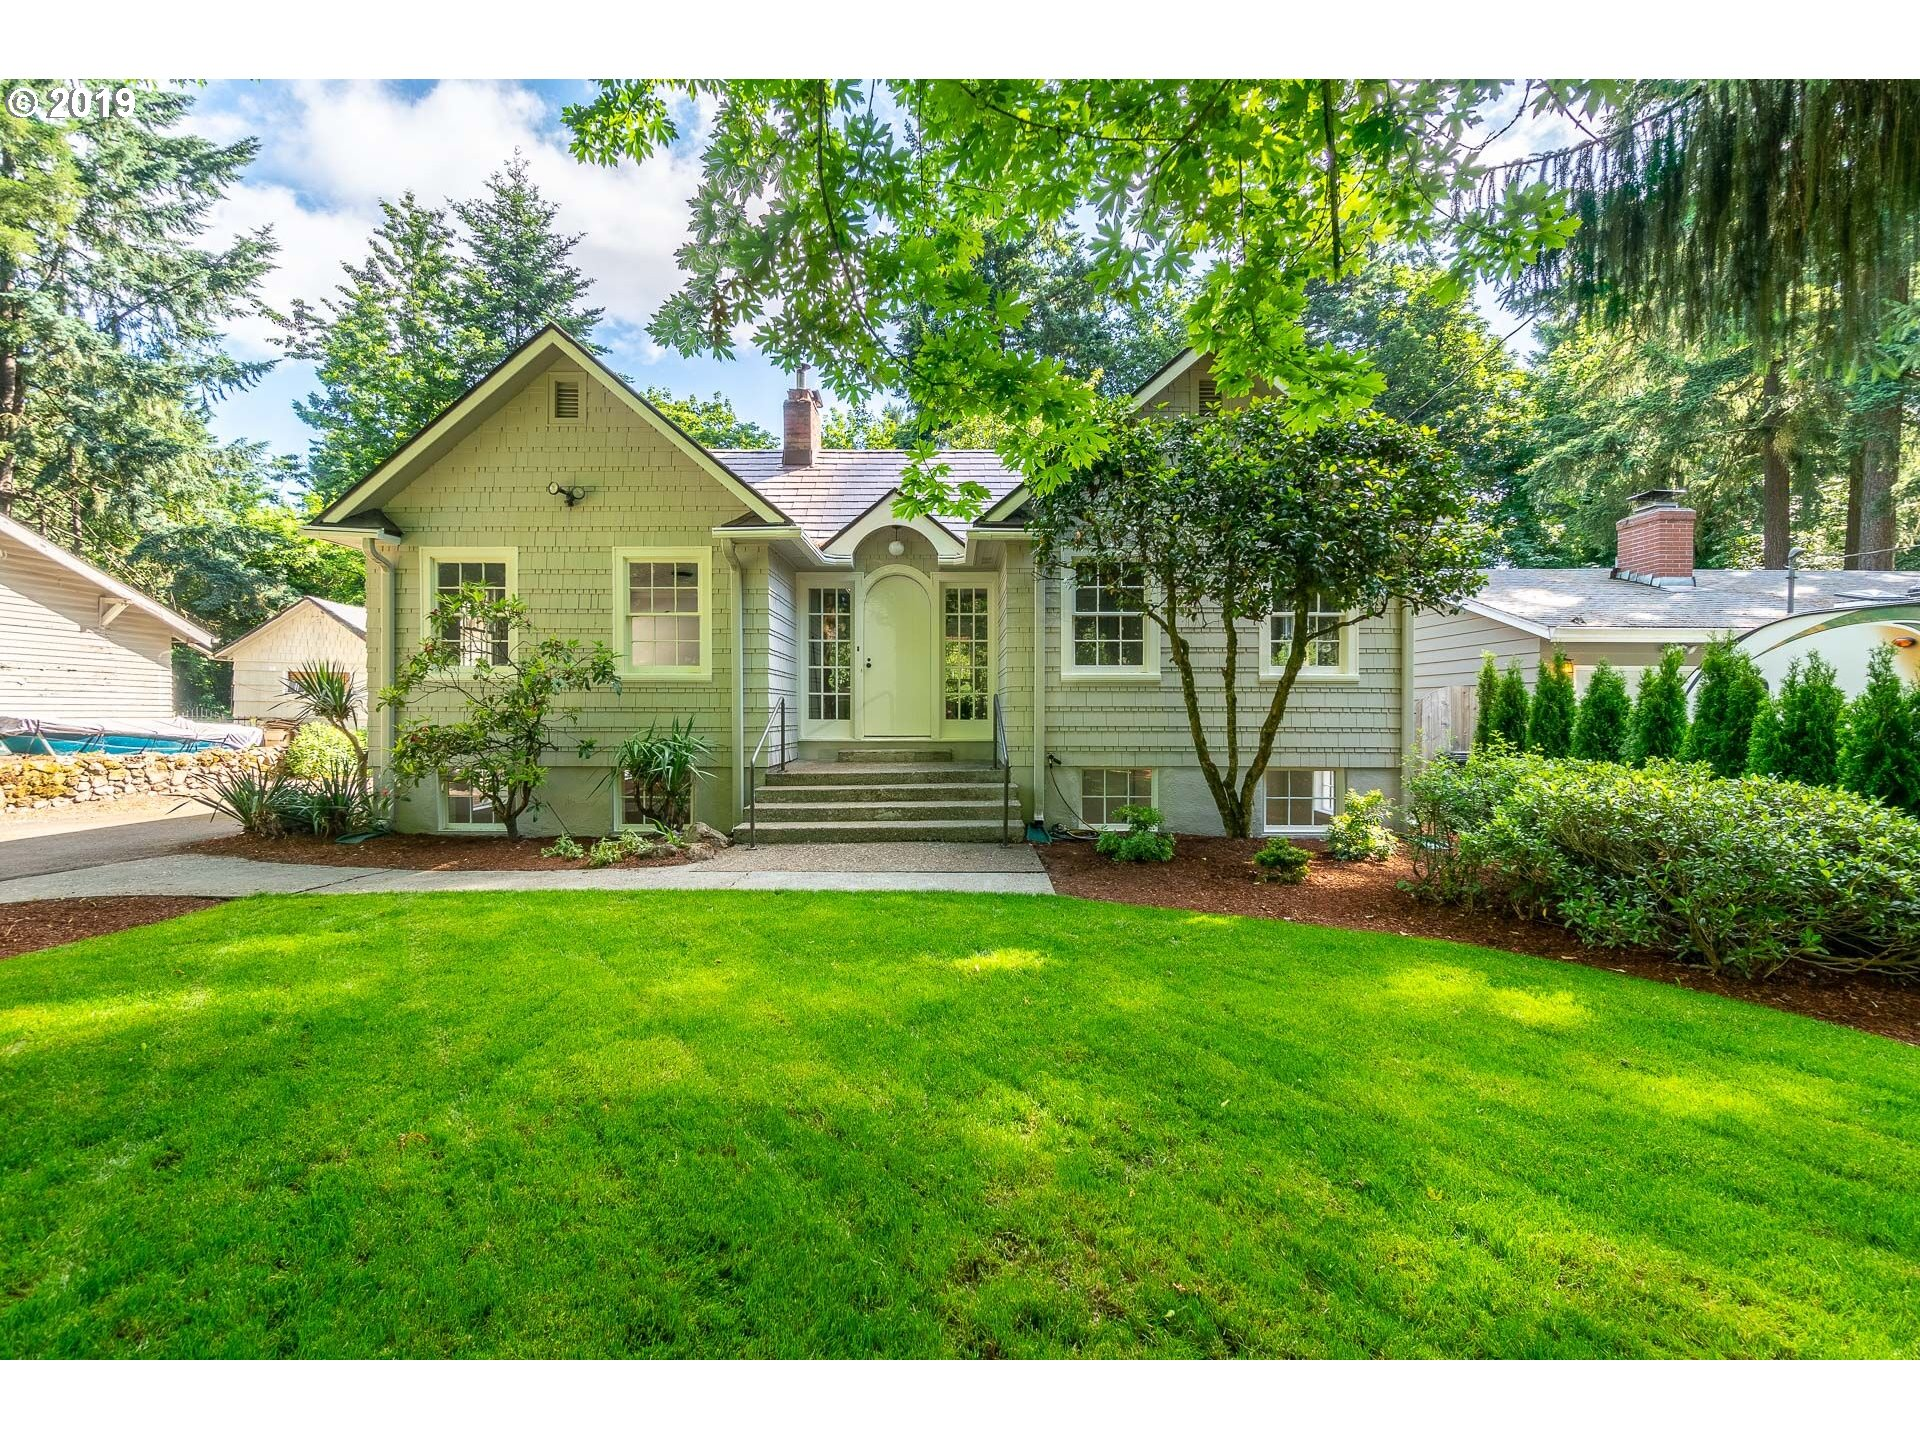 16722 LAKE FOREST BLVD, Lake Oswego OR 97035